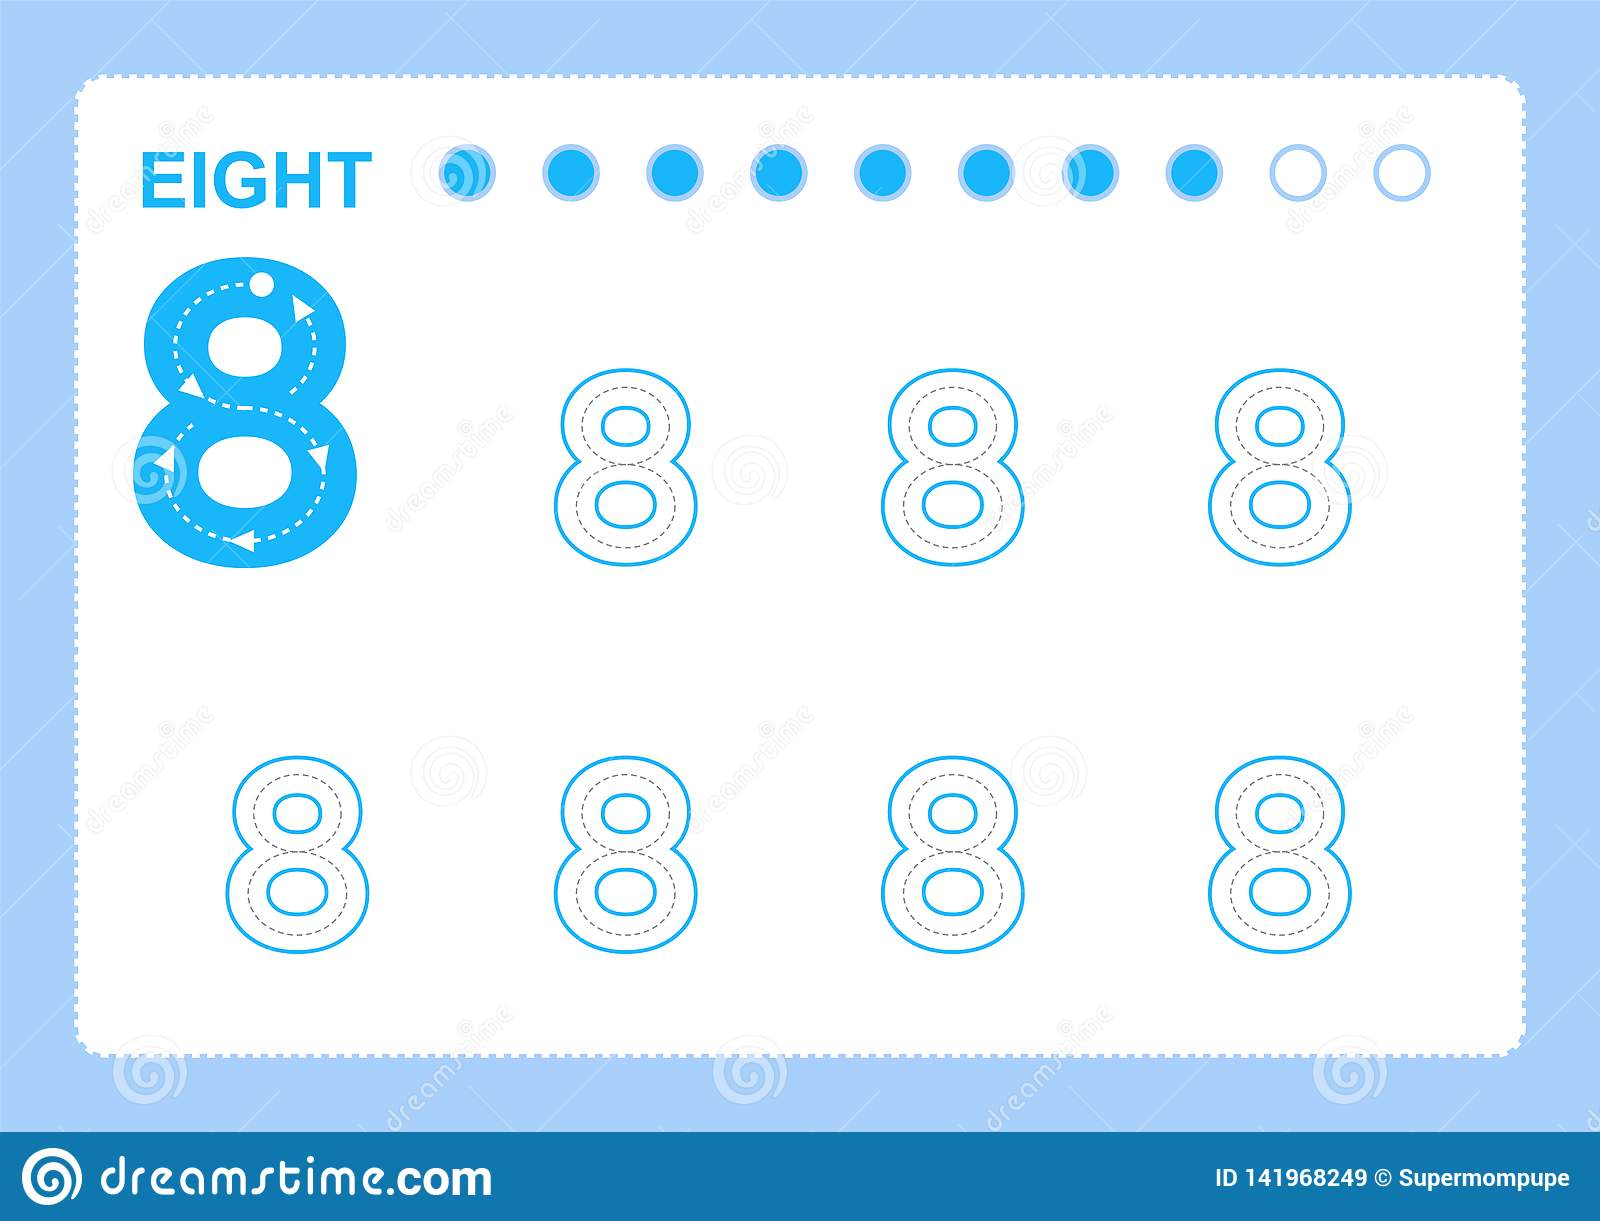 Free handwriting pages for writing numbers Learning numbers, Numbers tracing worksheet for kindergarten